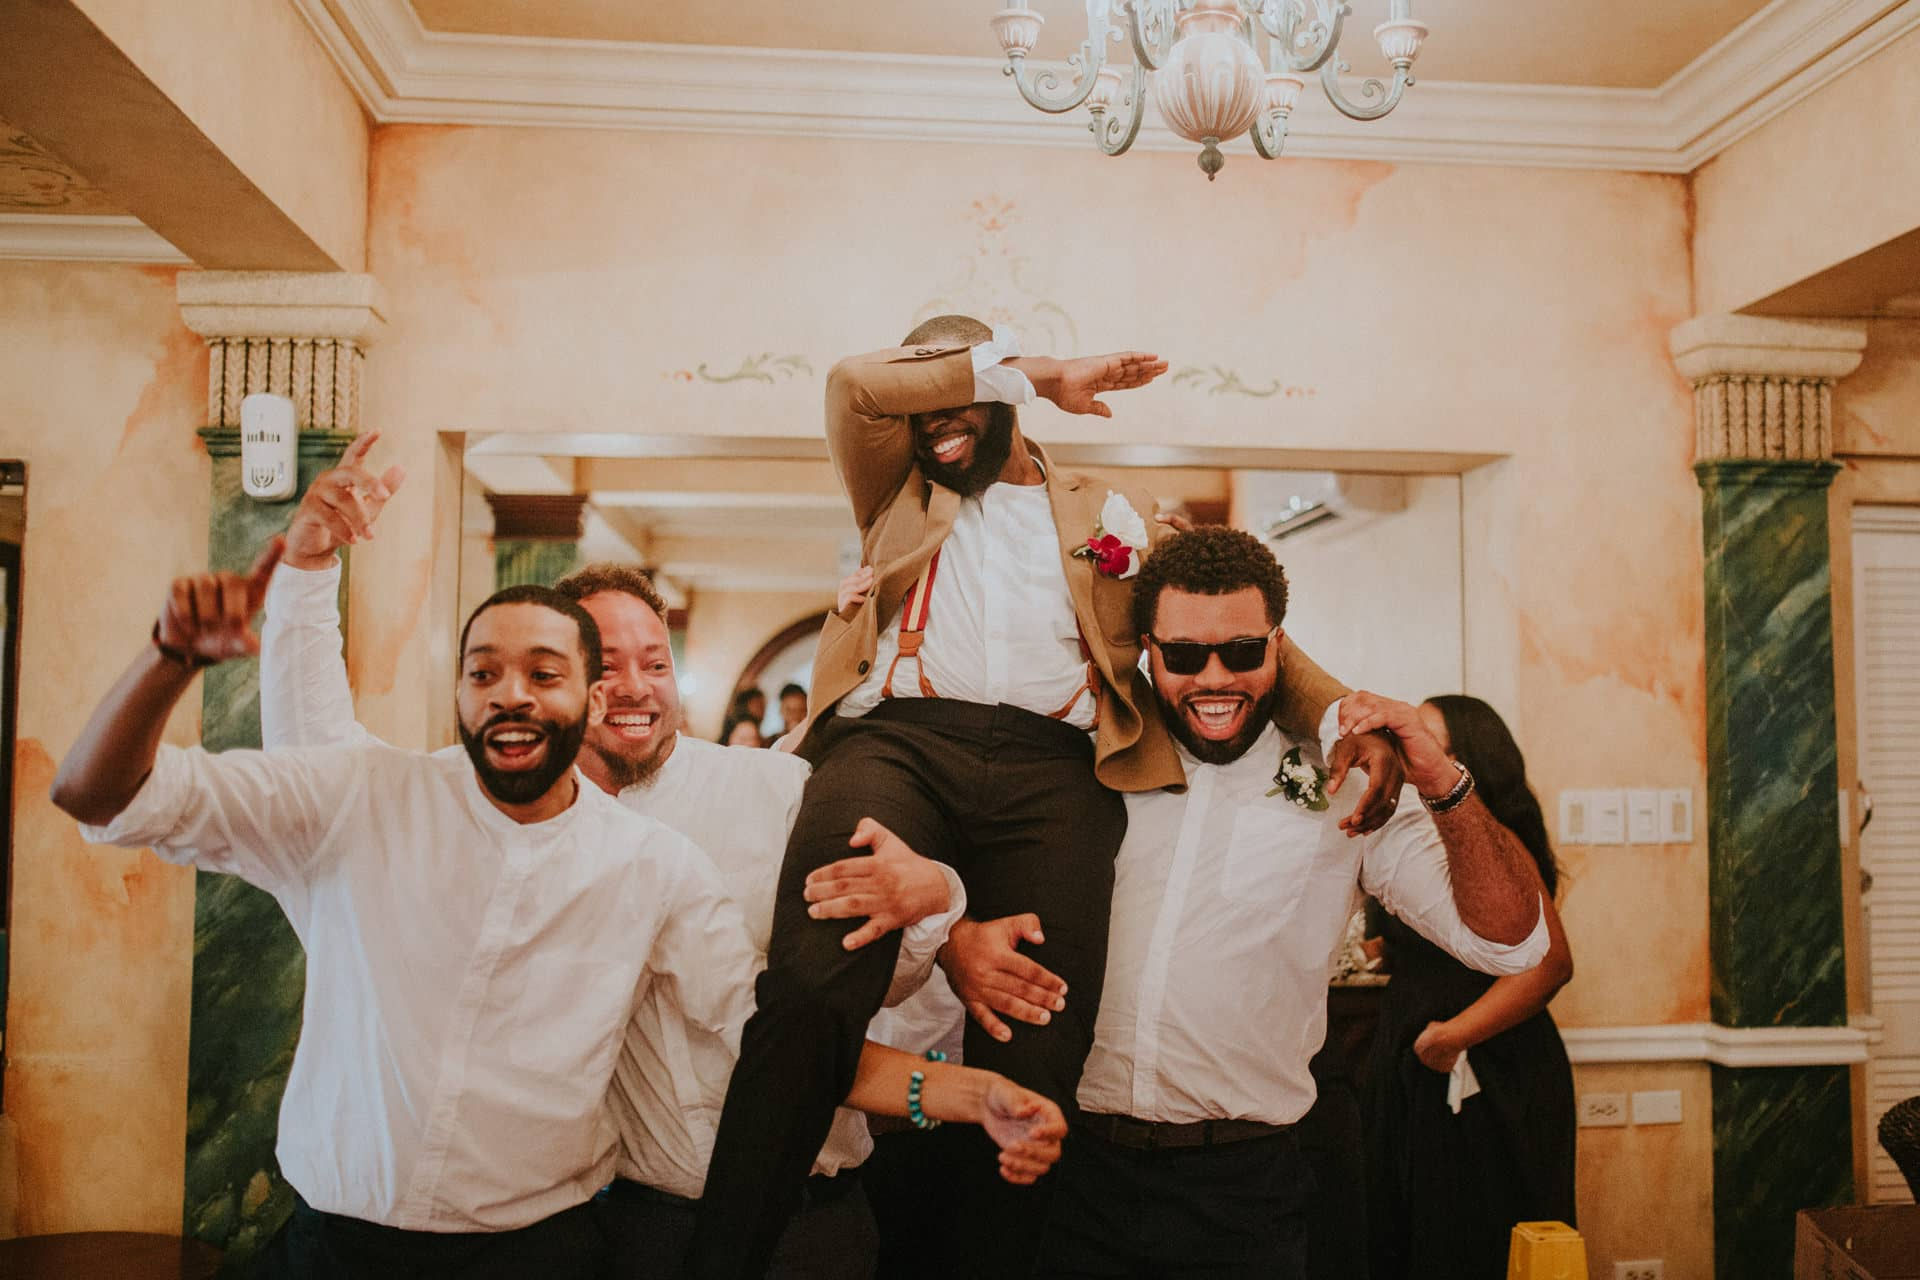 Groomsmen are holding up the groom.